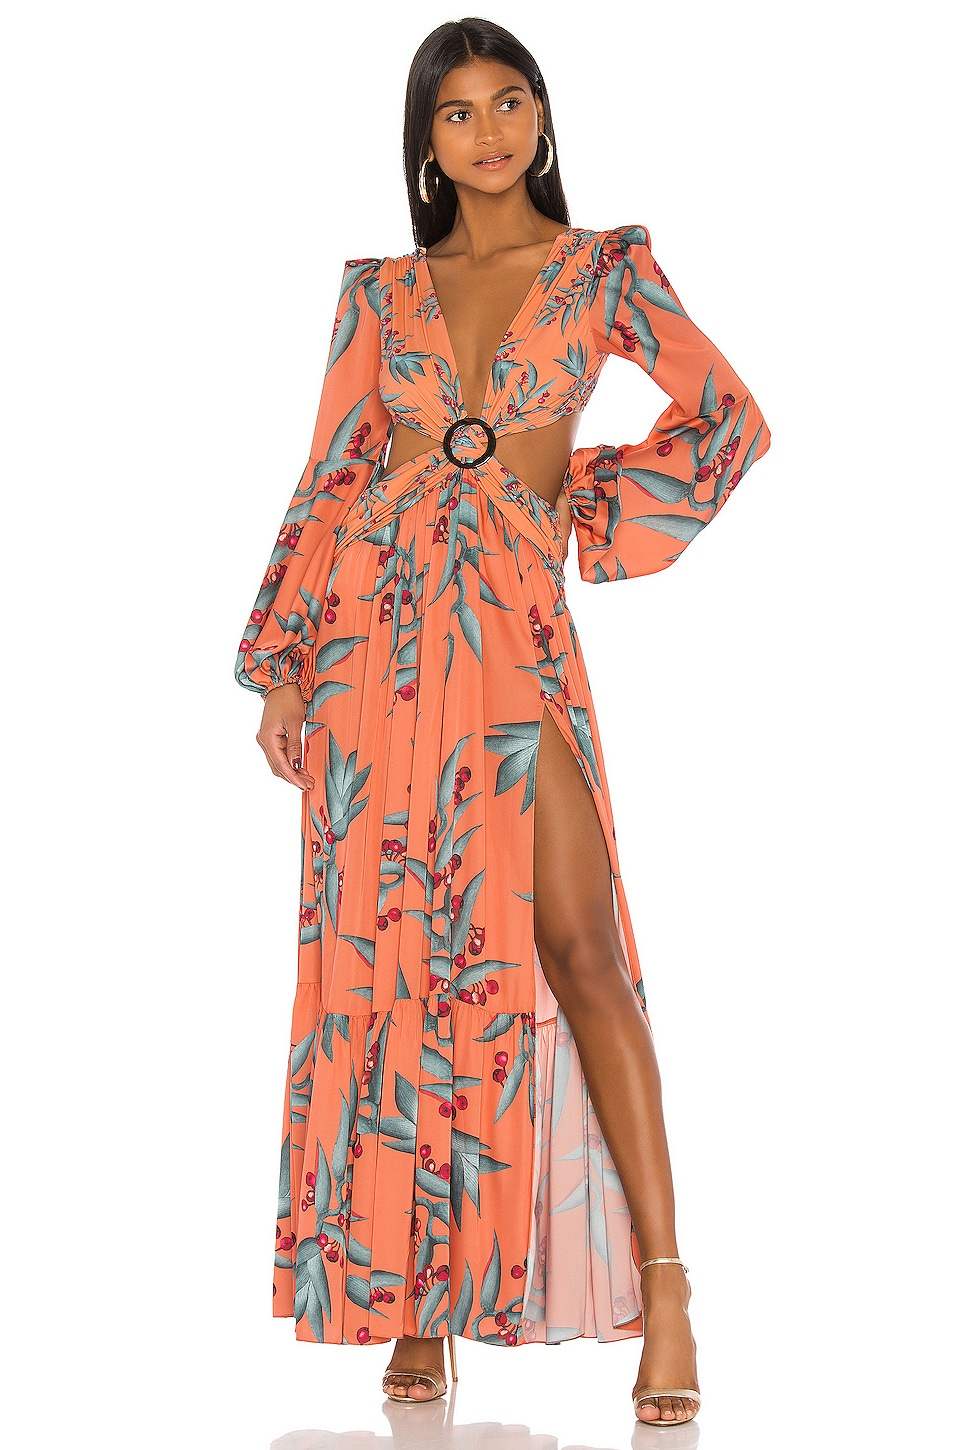 Patbo Long Sleeve Cutout Dress In Heliconia Coral Revolve Shop over 2,600 top long sleeve red dress and earn cash back all in one place. patbo